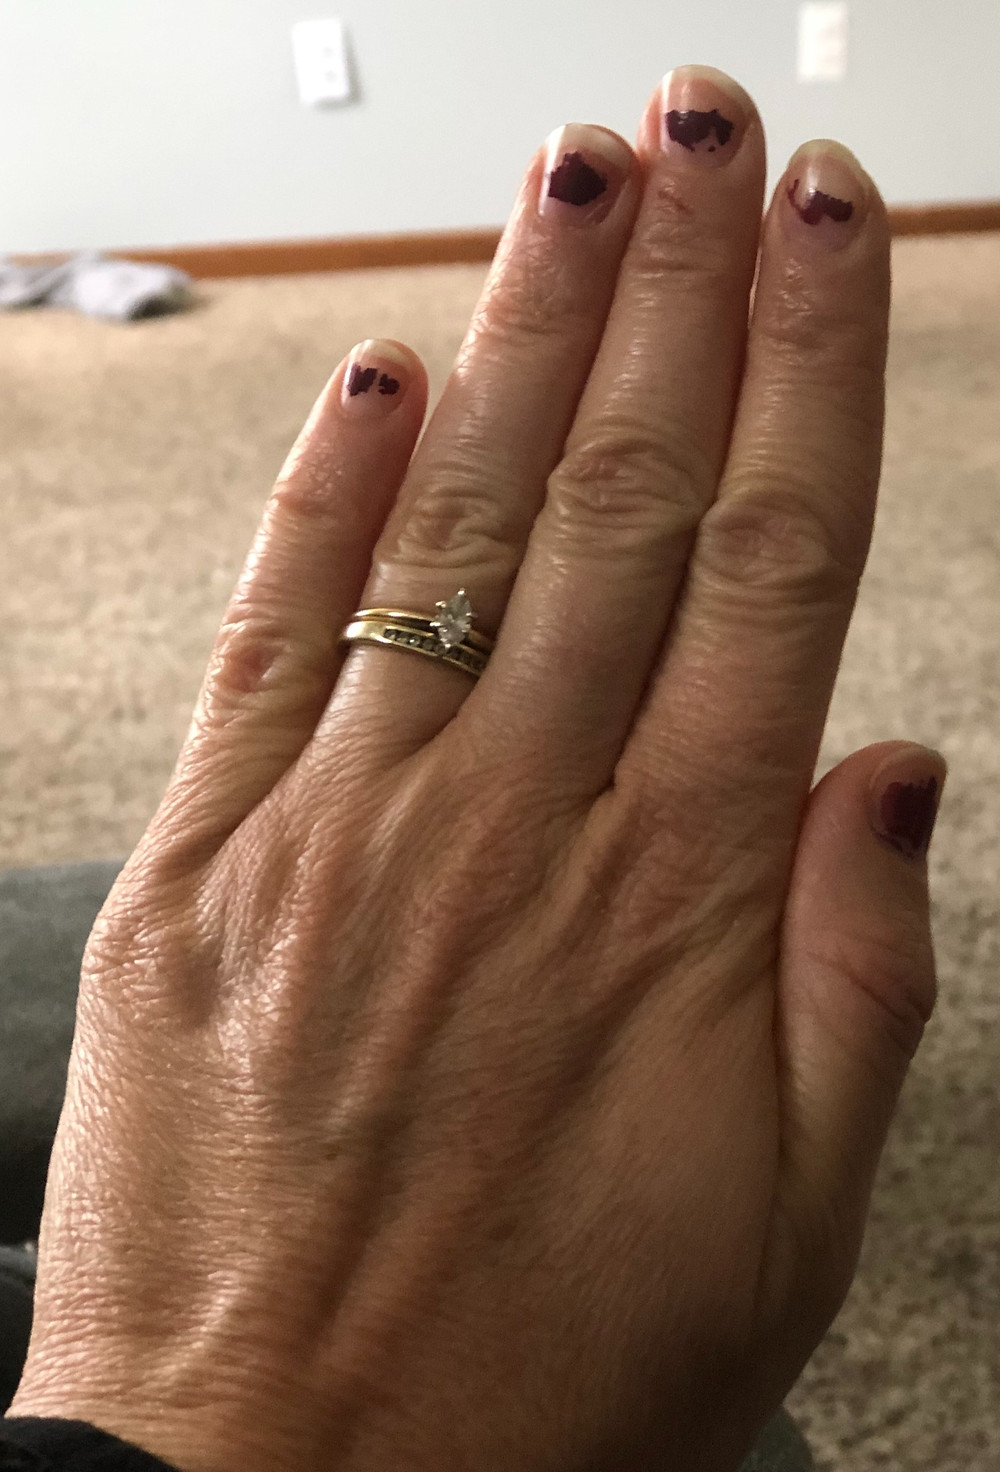 Partially painted finger nails